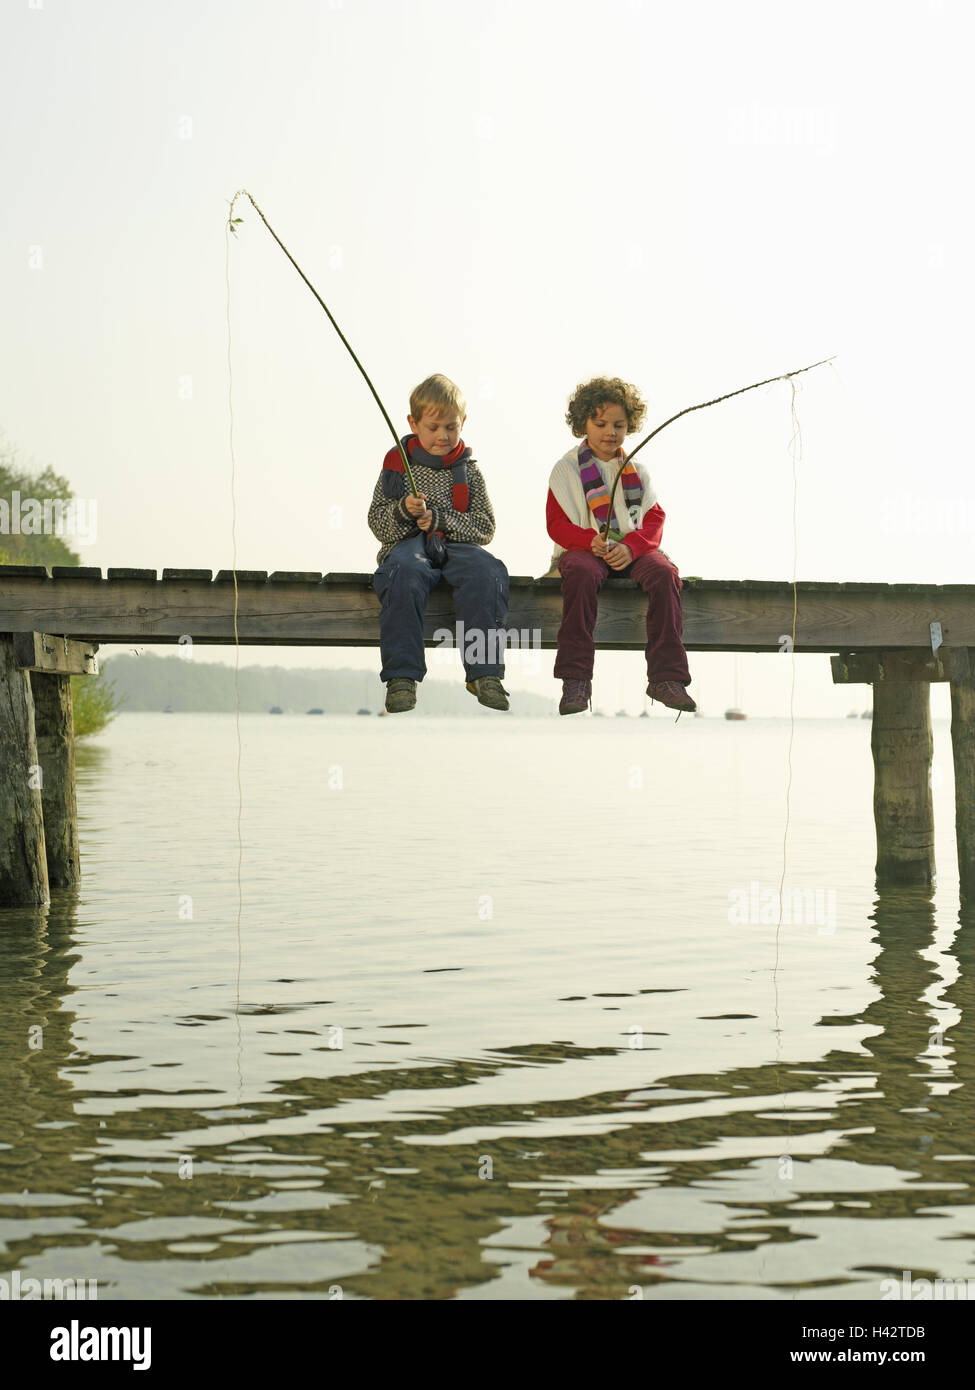 Lakes, bridge, children, girls, boy, sit, fish, wait, autumn, waters, wooden jetty, water, leisure time, holidays, - Stock Image